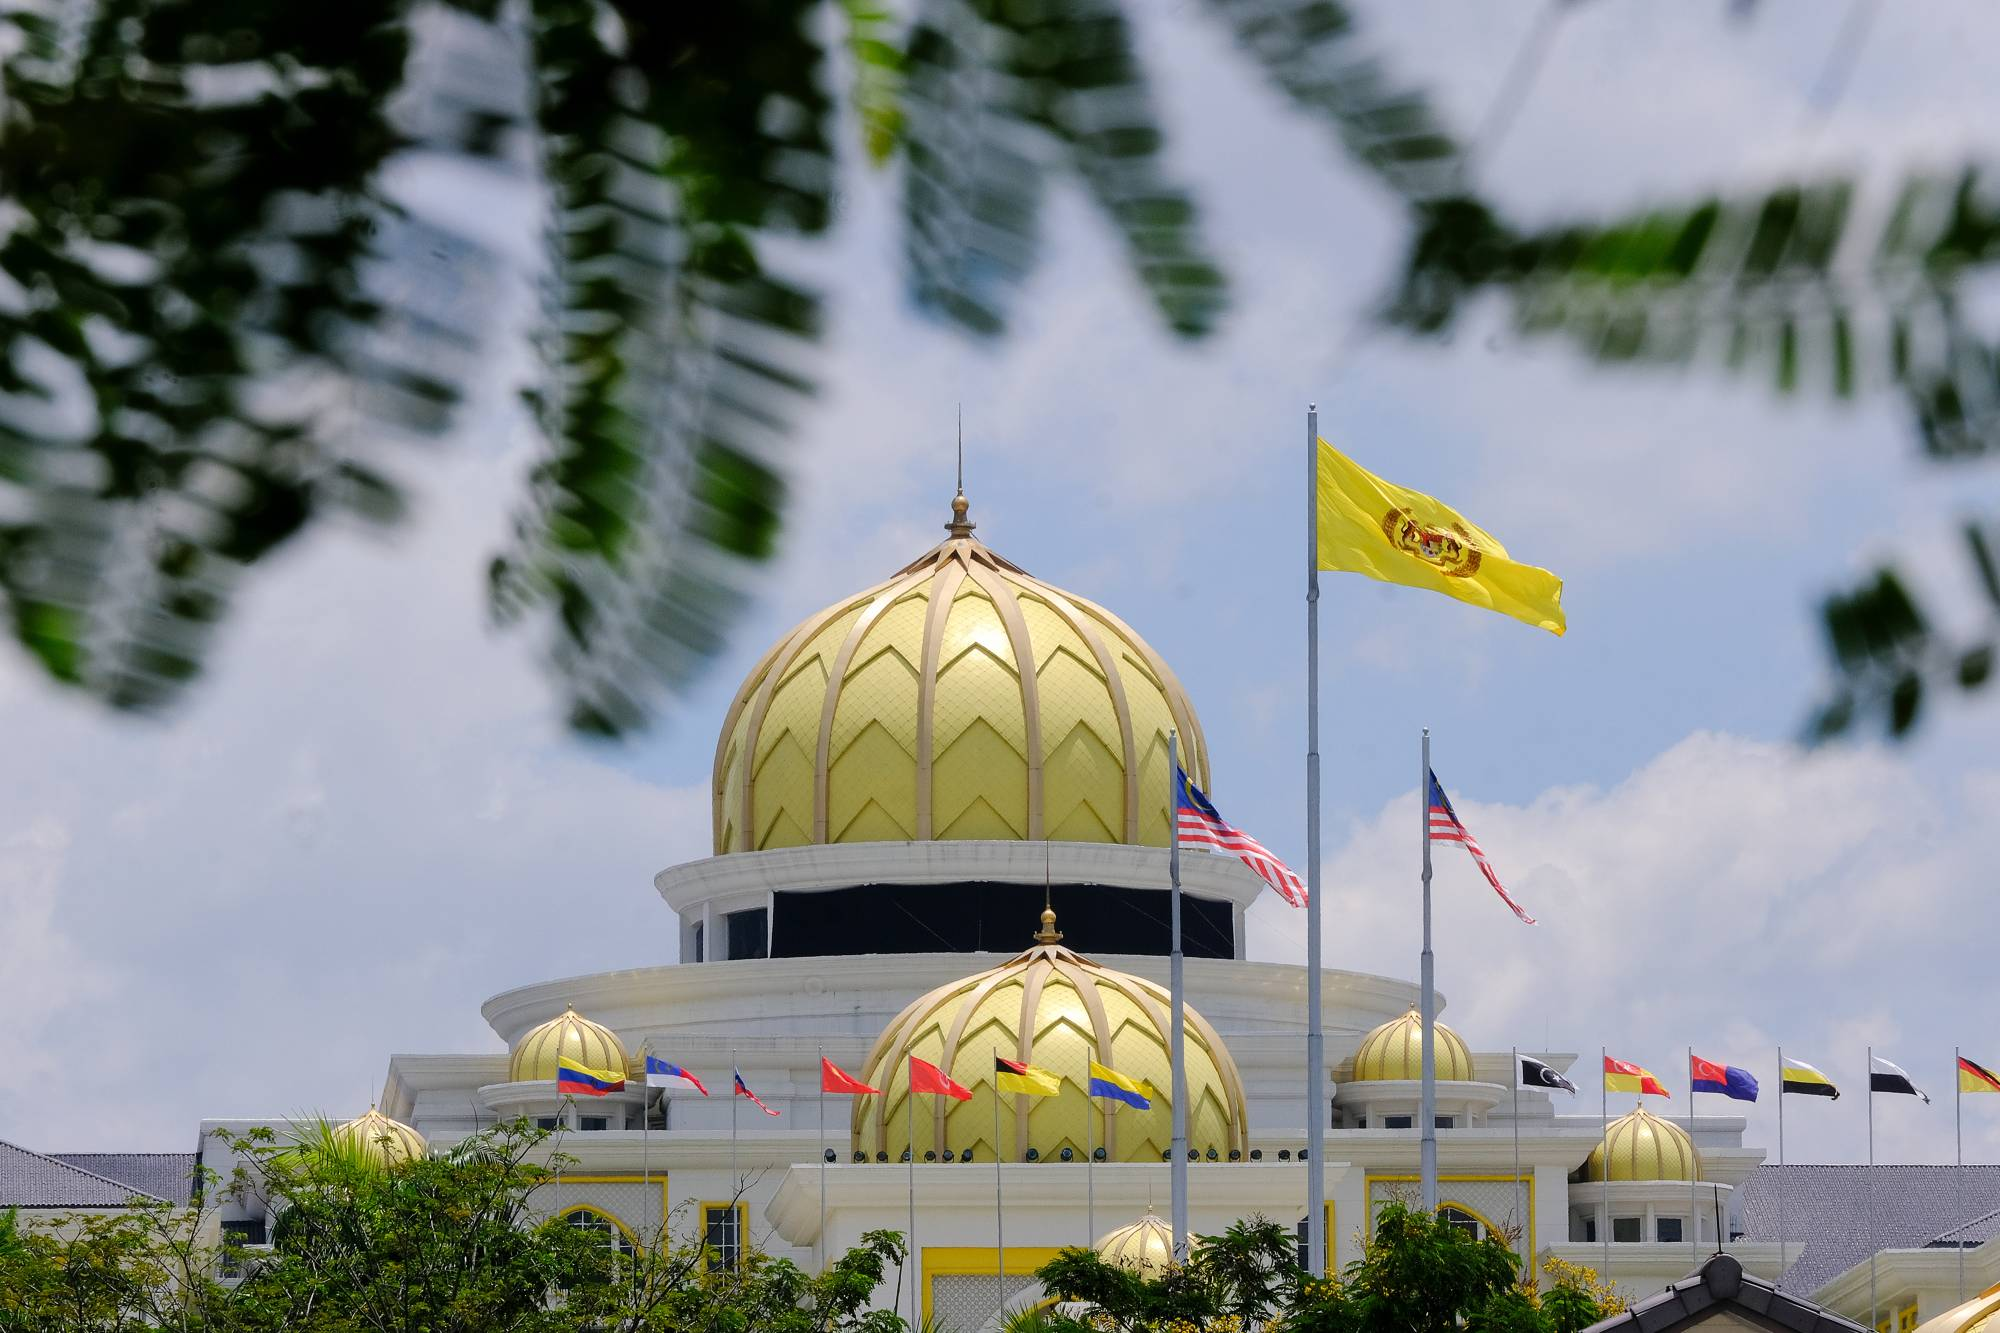 The National Palace in Kuala Lumpur on Saturday   BLOOMBERG